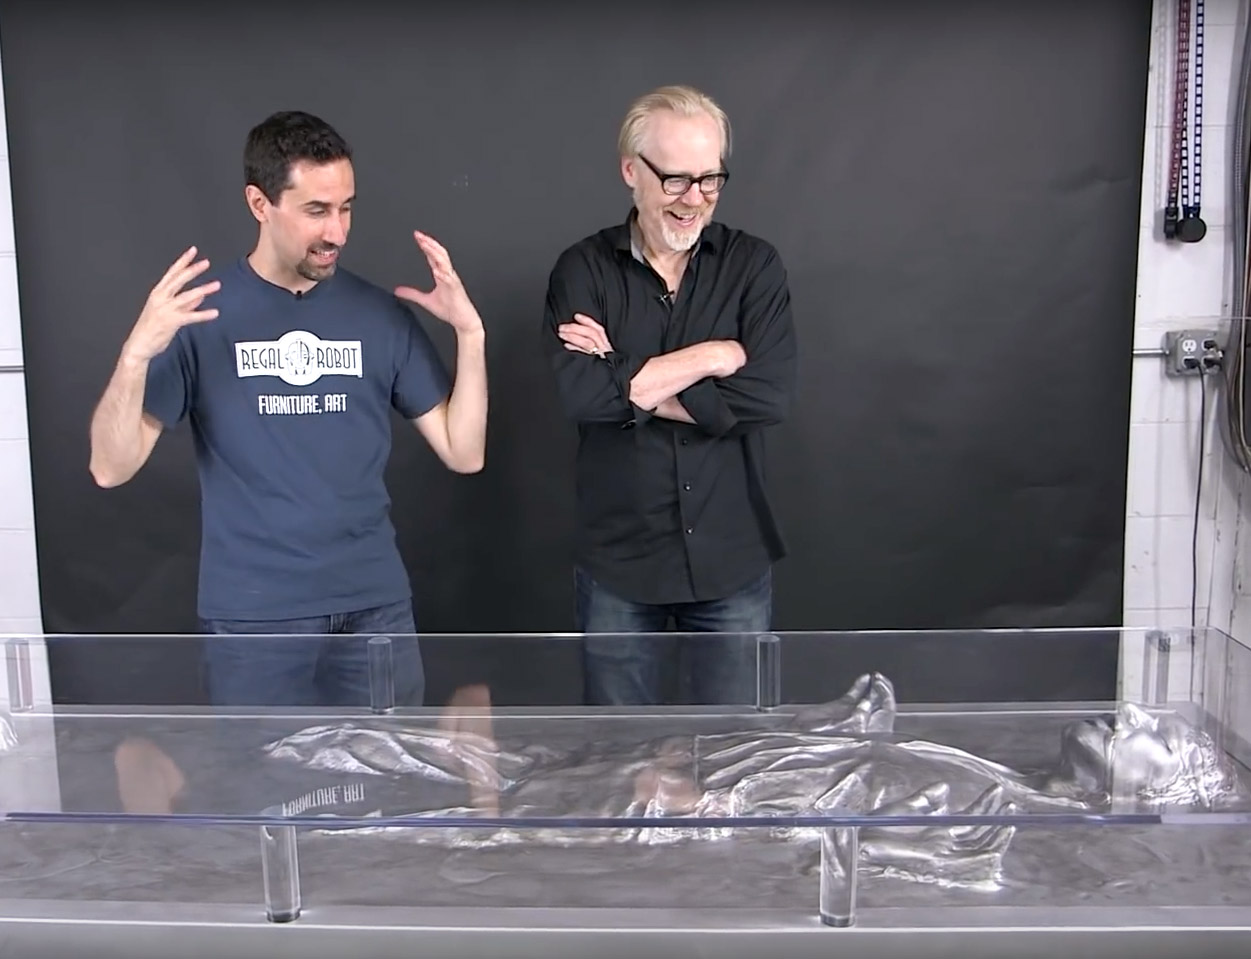 Tom Spina and Adam Savage with Han Carbonite Desk